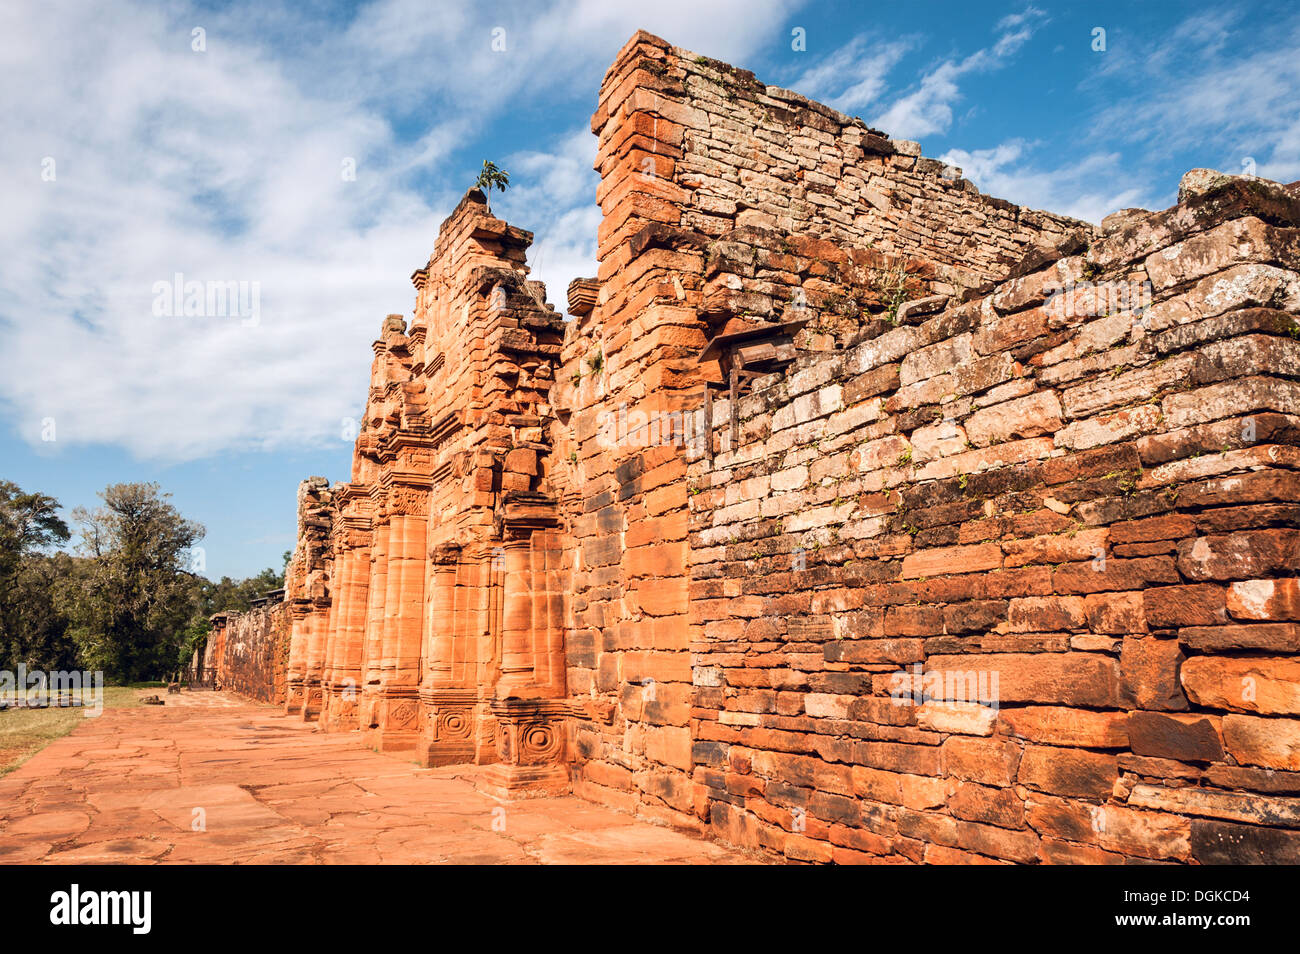 San Ignacio-Mini mission founded in 1632 by the Jesuits, Misiones Province, Argentina. - Stock Image